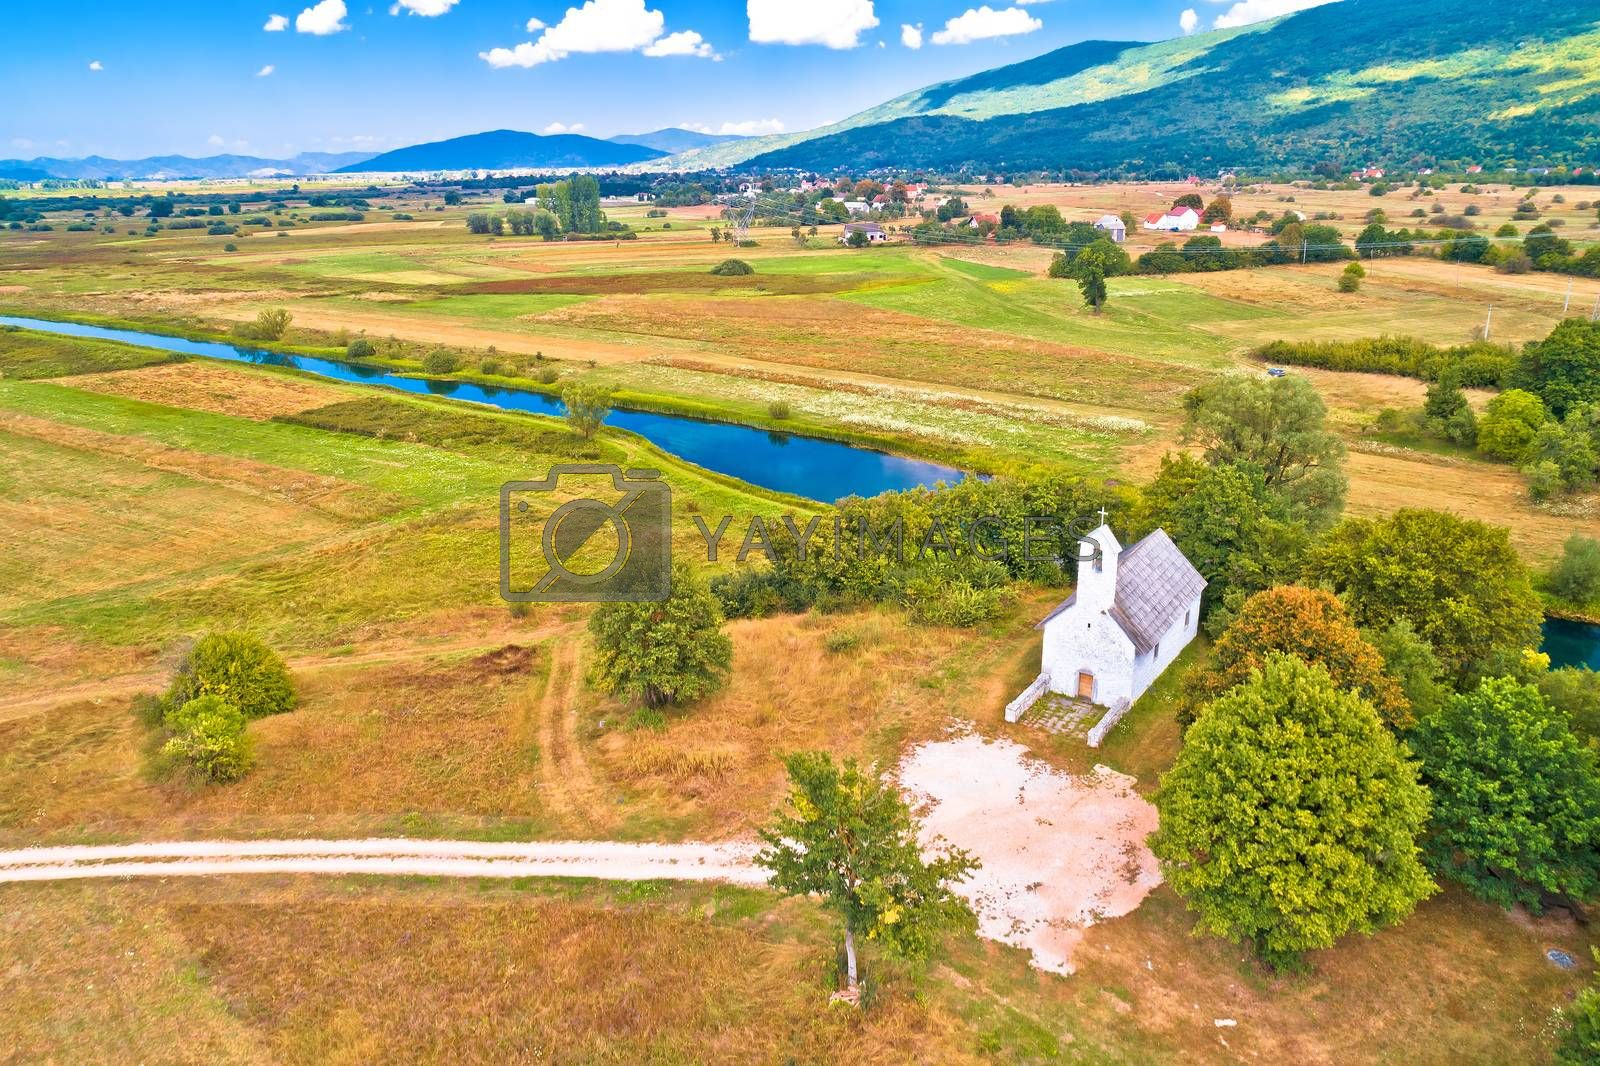 Stone church by Gacka river aerial view, Lika region of Croatia